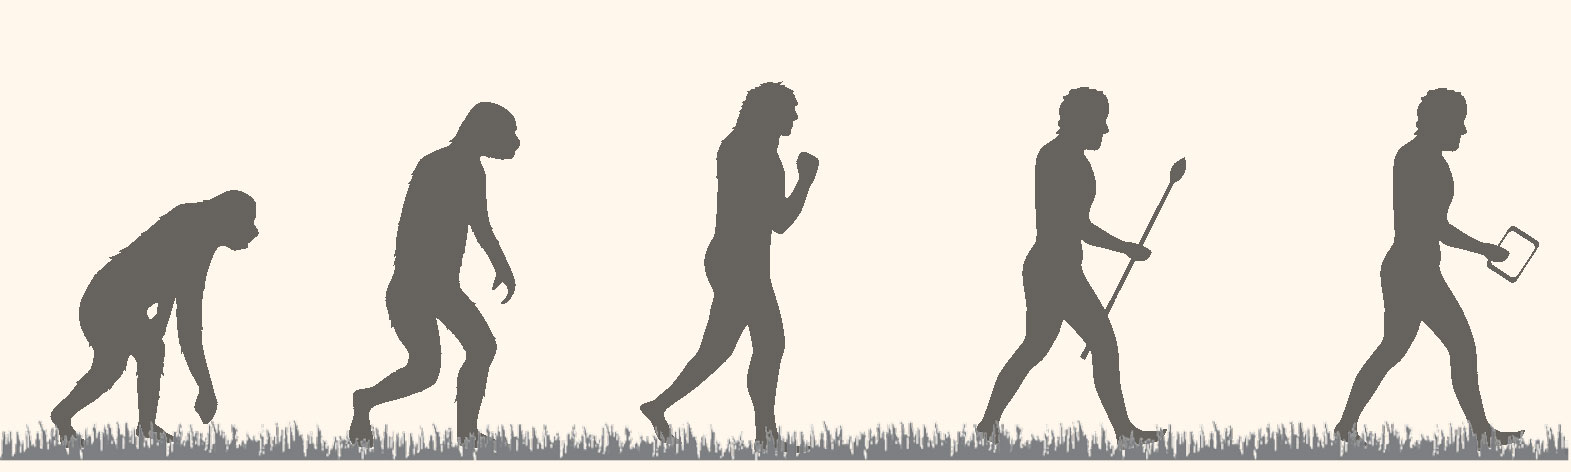 A diagram of silhouettes of an ape, a homo erectus, a homo neanderthalensis, a homo sapien with a spear, and a homo sapien with a tablet computer. They are standing on grass and all walking toward the right, suggestion the evolution of one into the other.